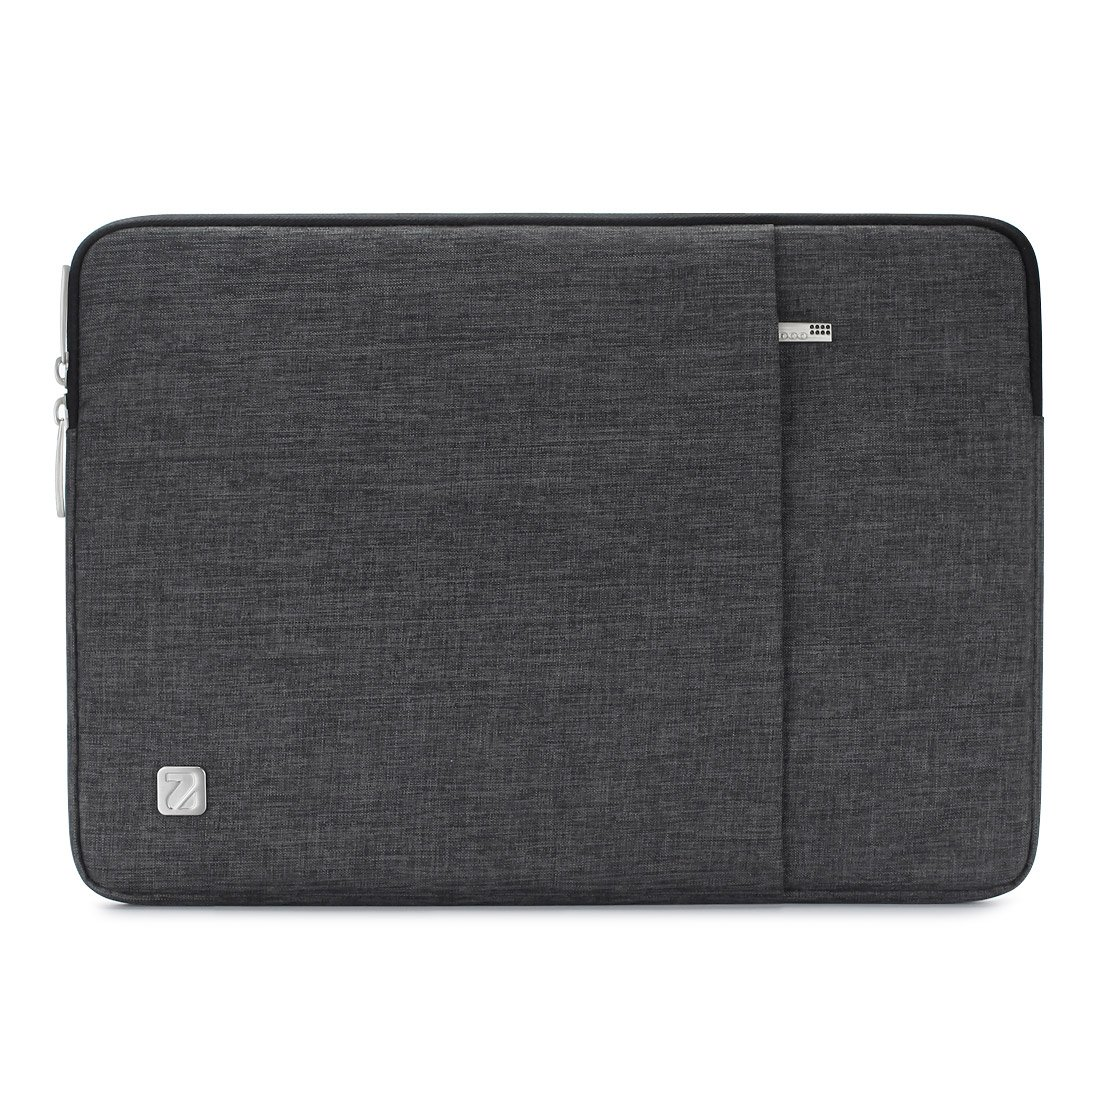 """NIDOO 13.3 Inch Laptop Sleeve Case Water Resistant Protective Cover Portable Carrying Bag for 13"""" MacBook Pro/MacBook Air / 13.3"""" Dell Inspiron 13/13.3"""" Notebooks, Dark Grey"""